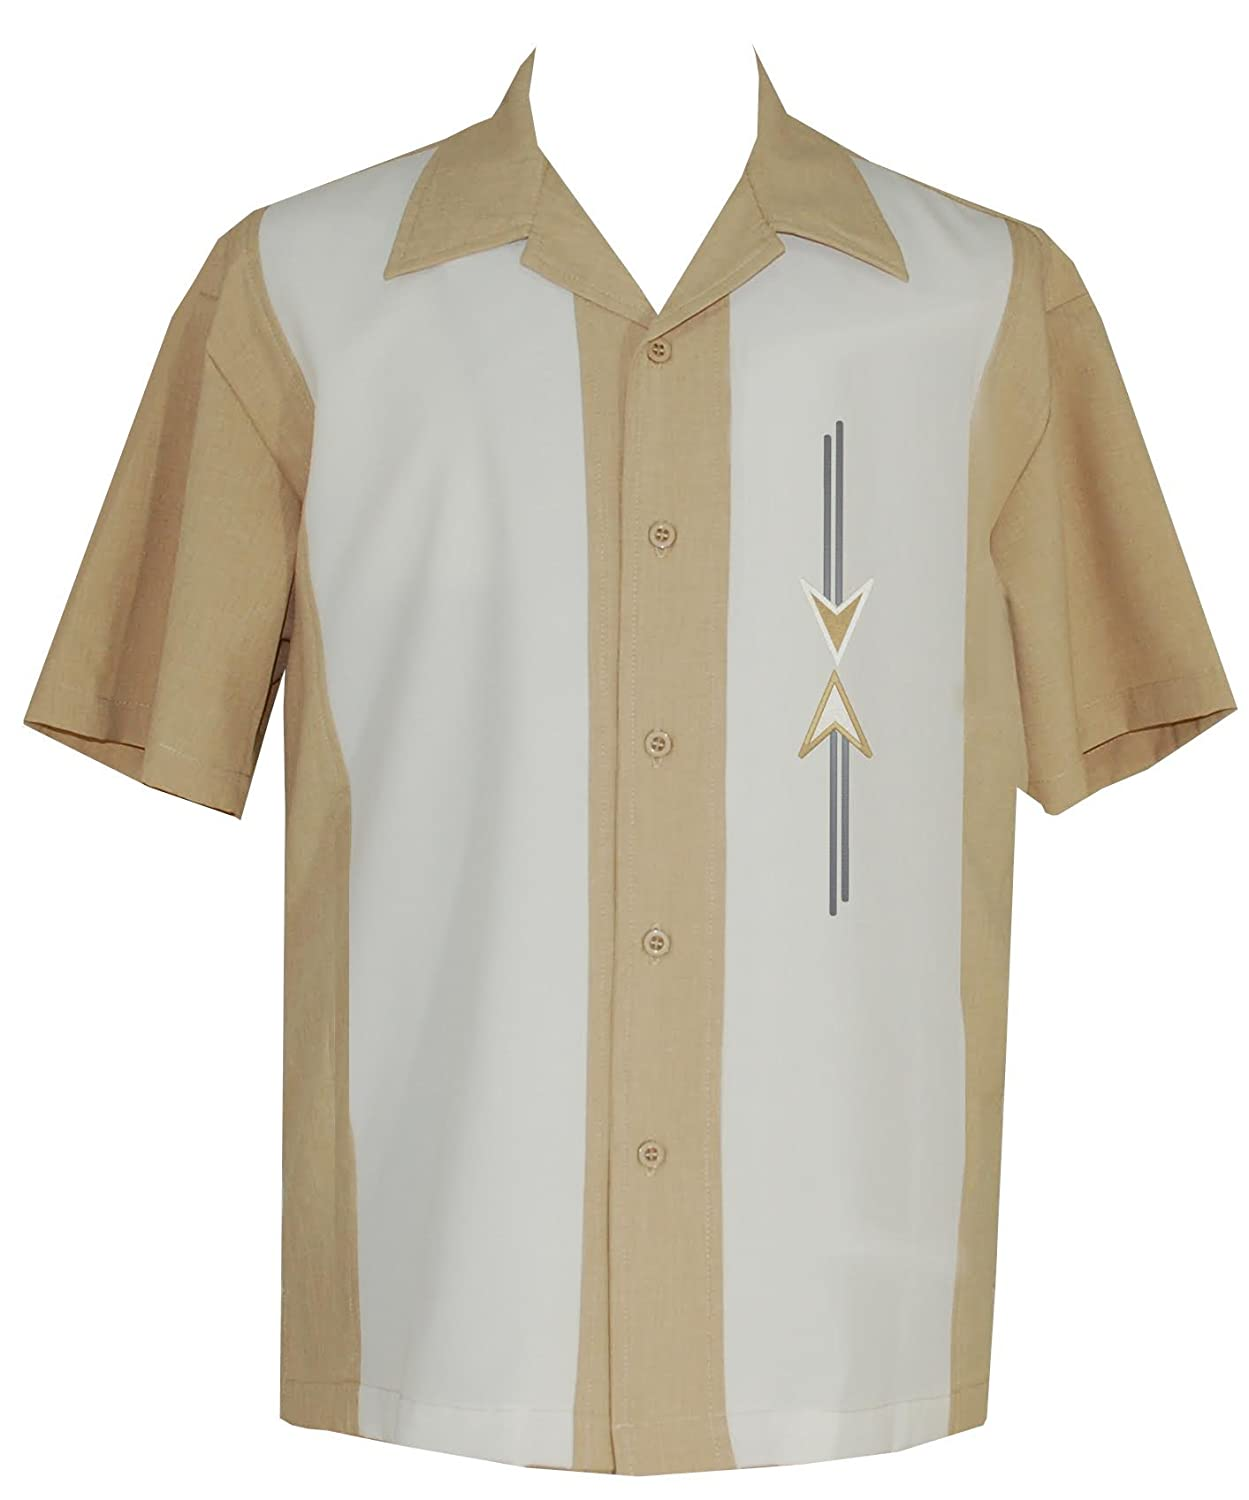 1950s Men's Clothing Lucky Paradise Mens Camp Shirt Vintage Cuban Style Bowling Shirt ~ Tom Collins ~ Guayabera Dress Shirt Style $54.95 AT vintagedancer.com